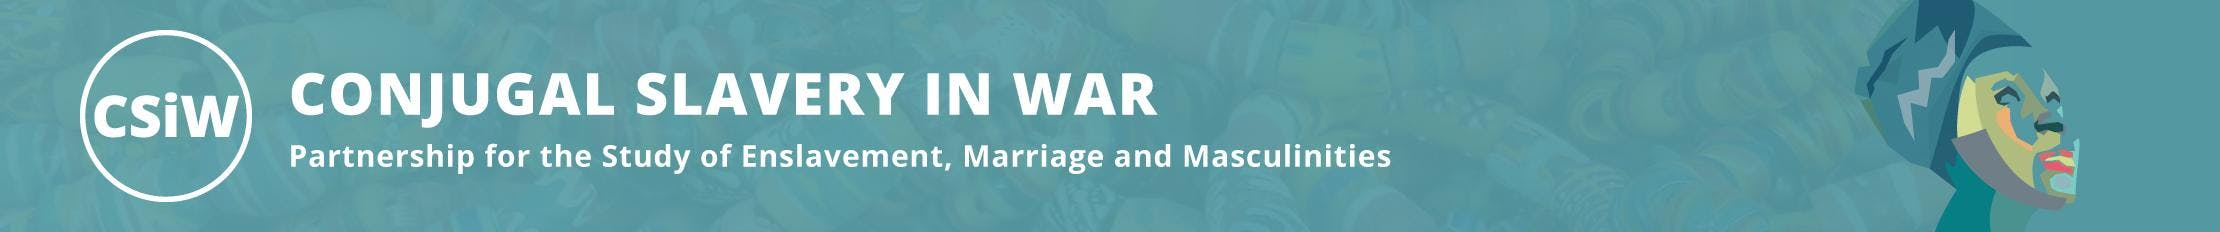 Enslavement, Conflict and Forced Marriage in